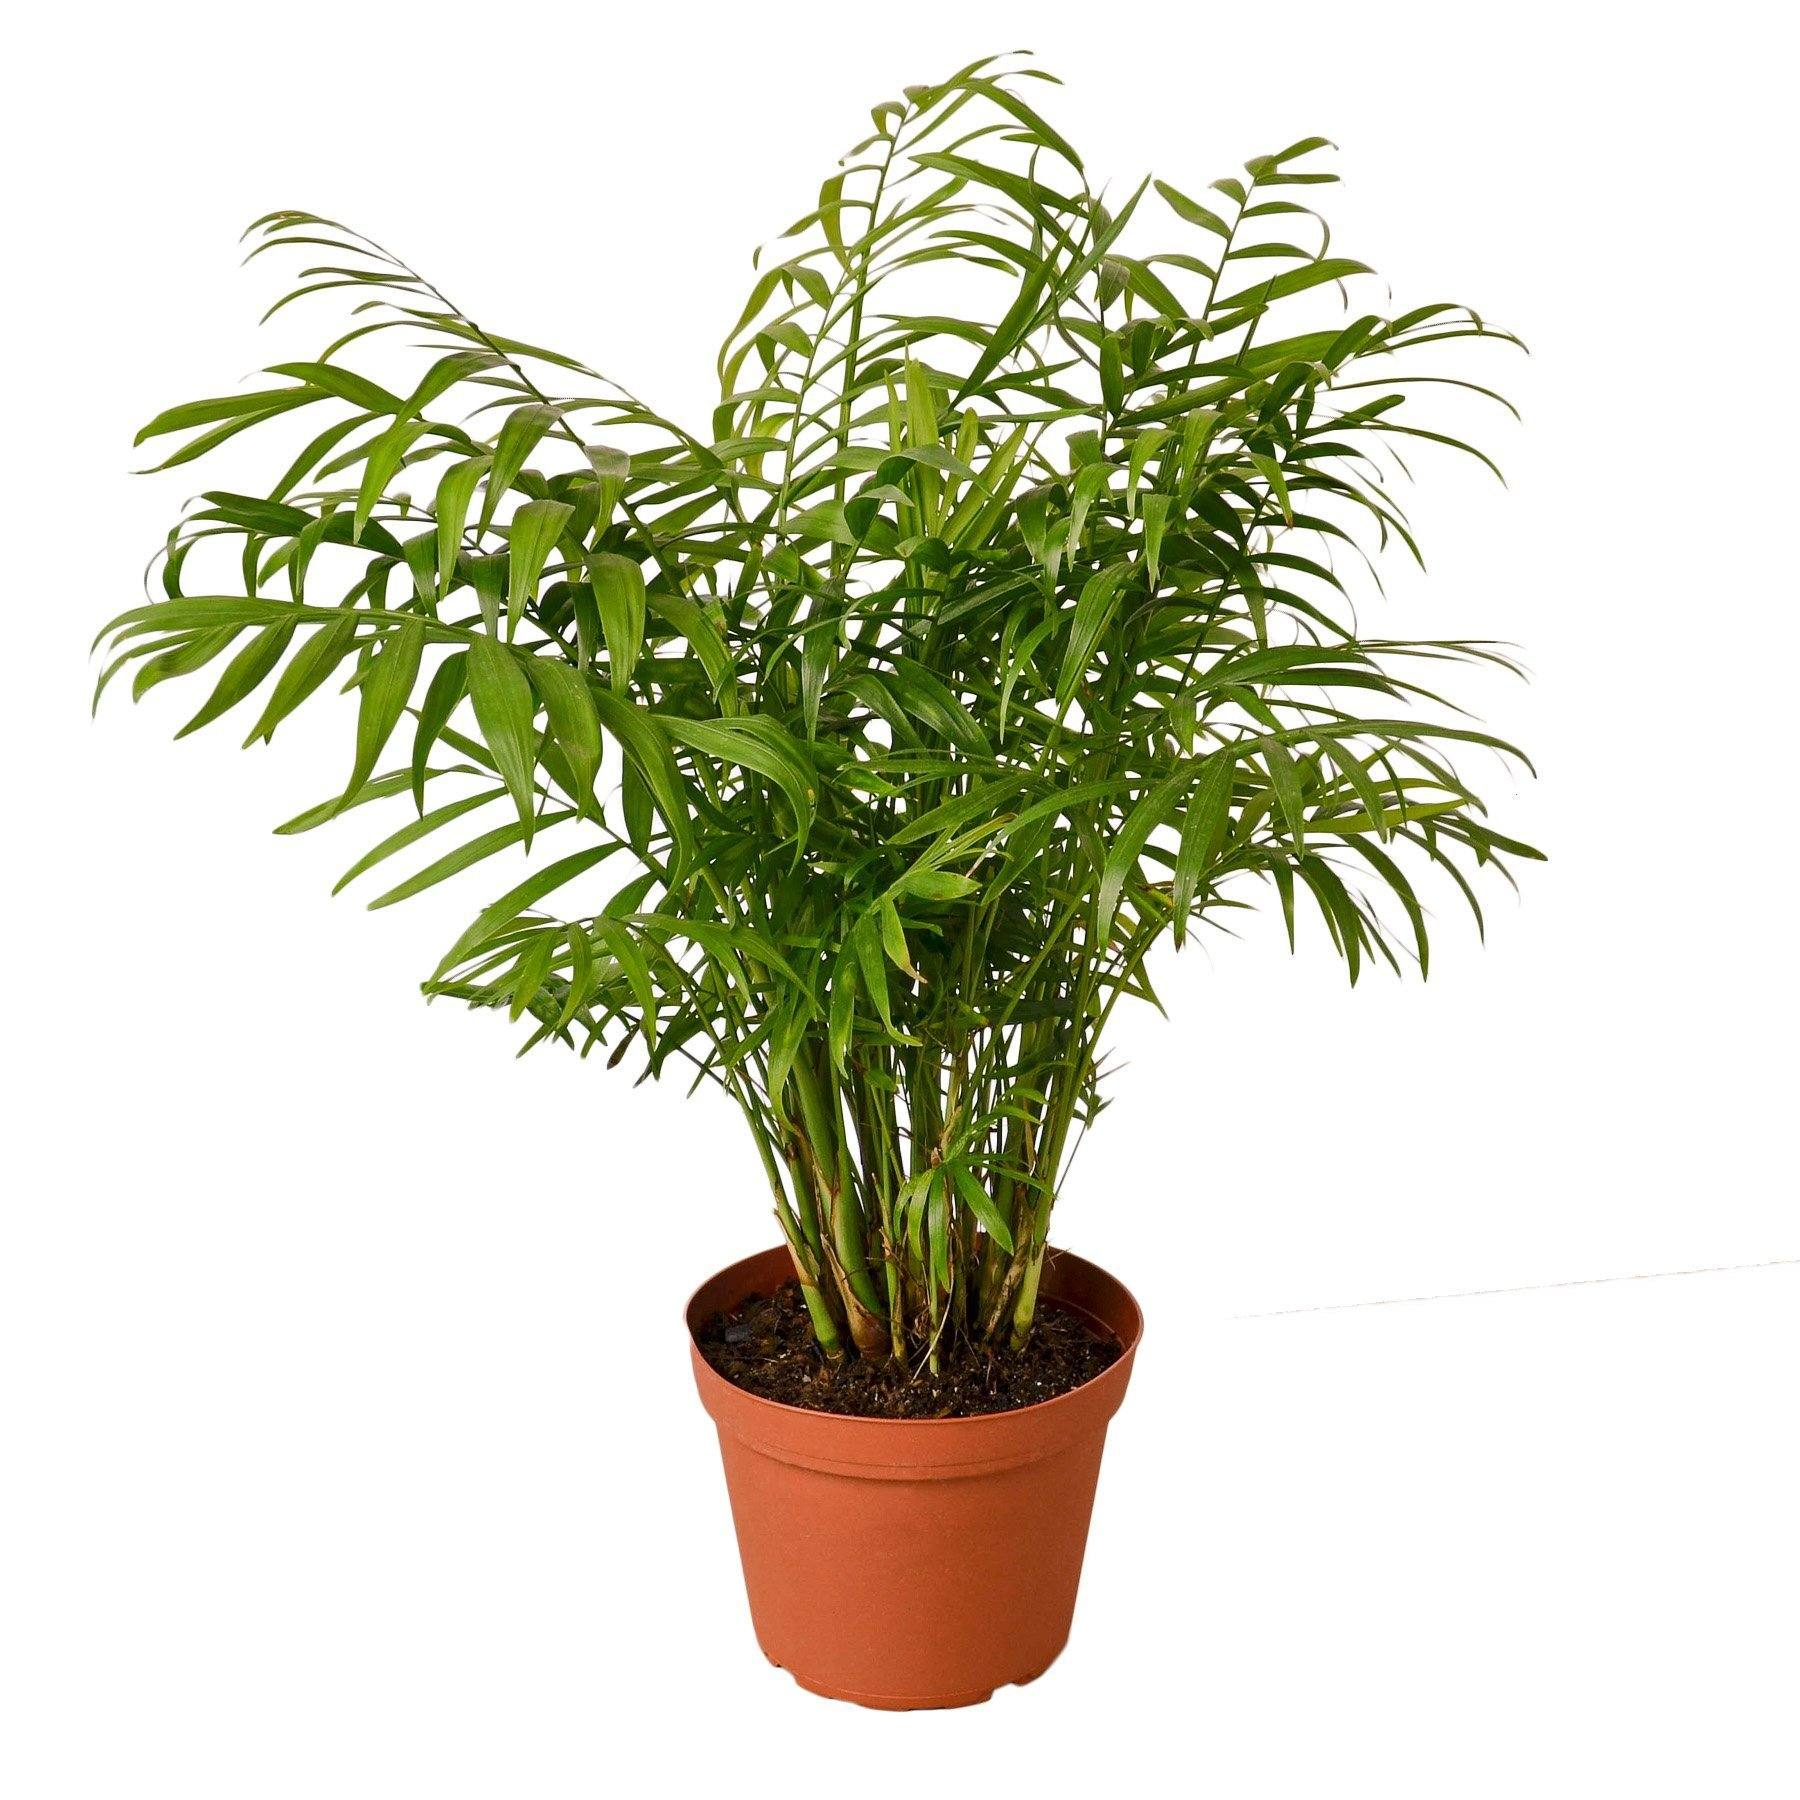 Parlor Palm Houseplant-SproutSouth-Indoor Plants